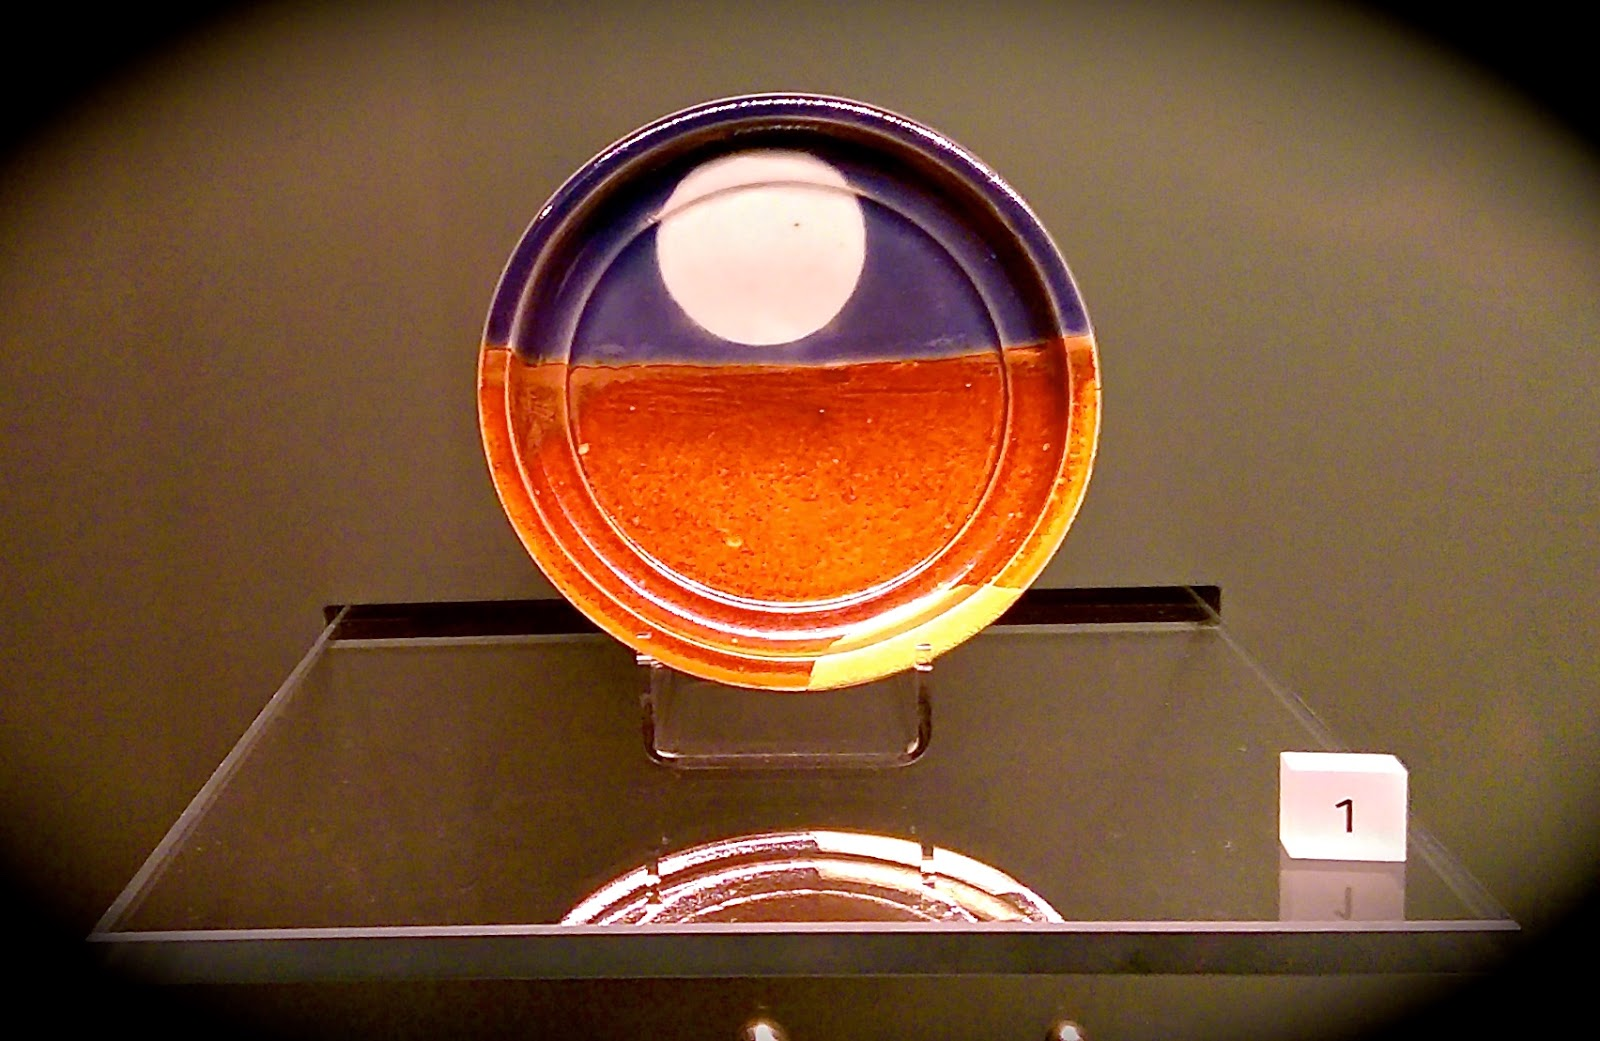 Porcelain dish, Arita, Japan, 1600-1699